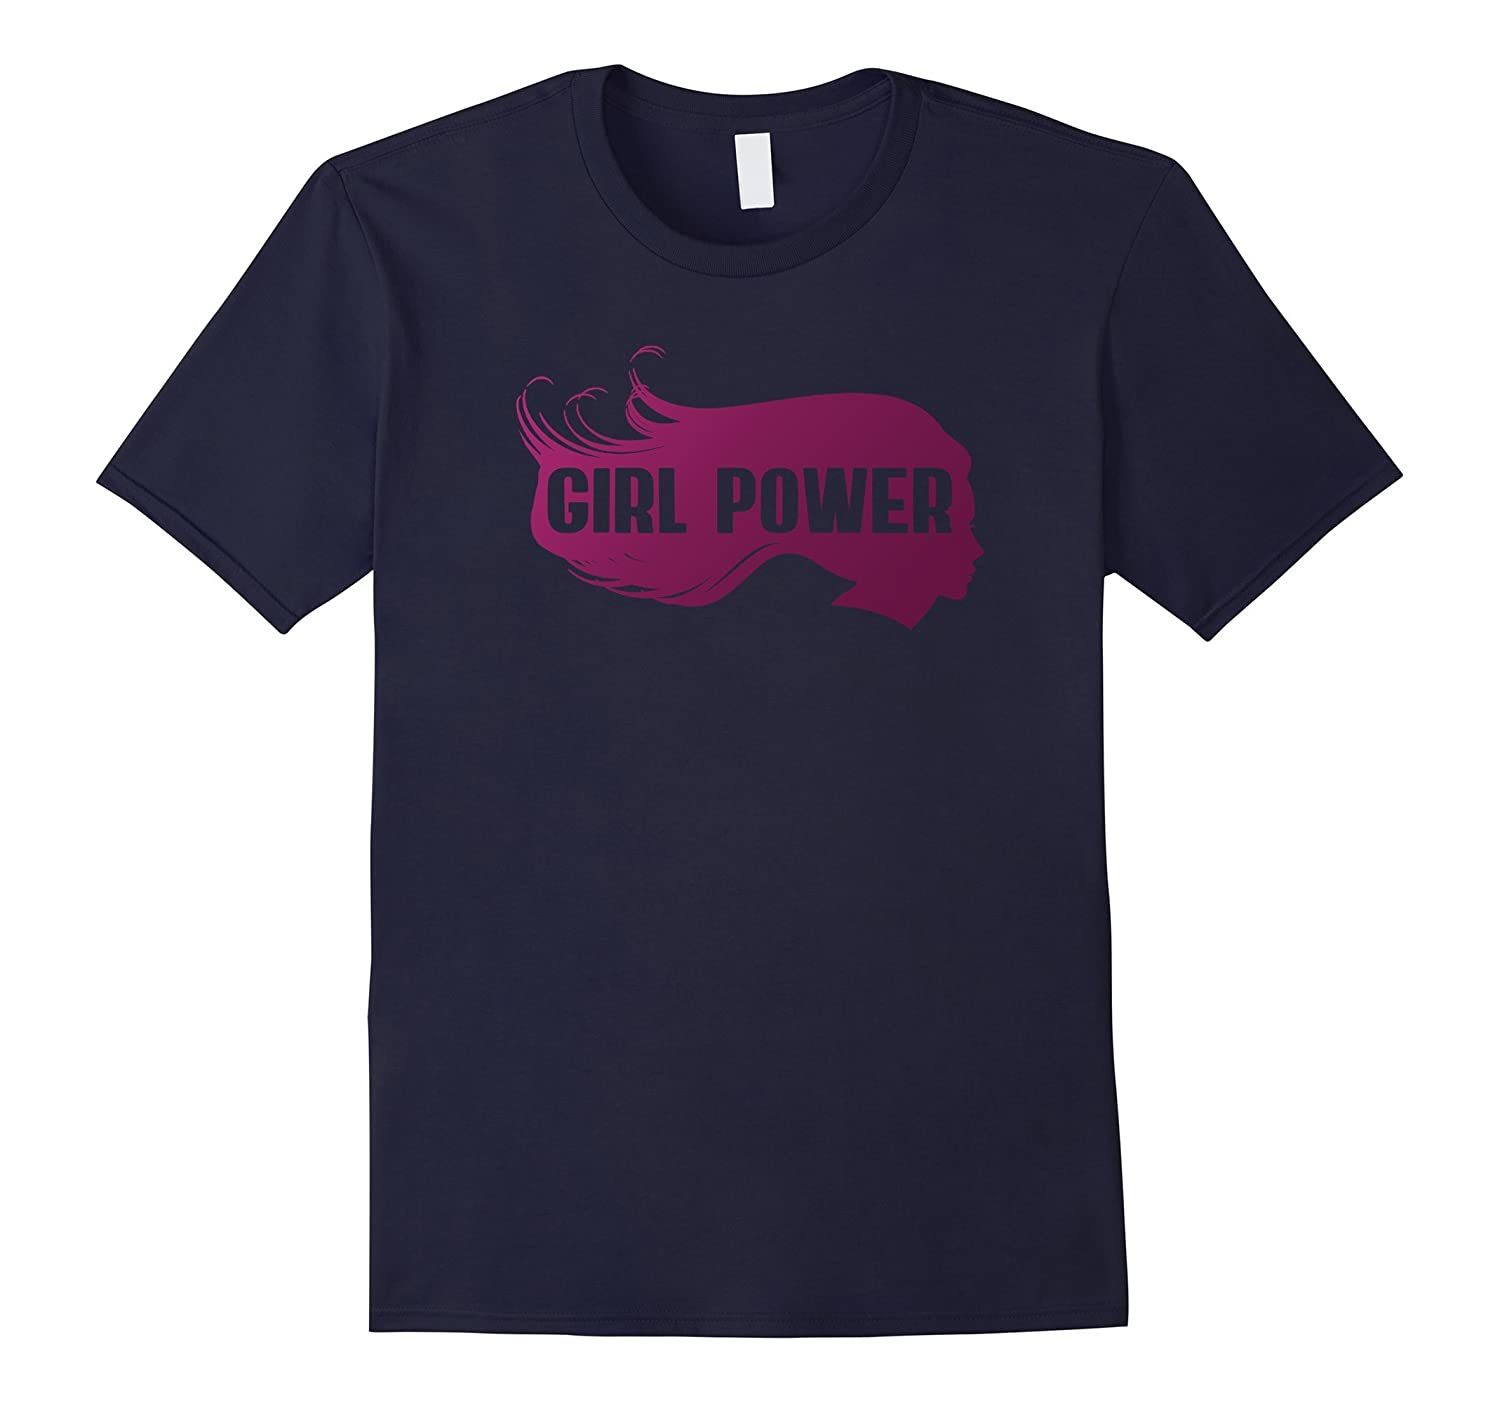 Girl Power T-Shirt Rose GRL PWR T-Shirt Feminist Movement-CD